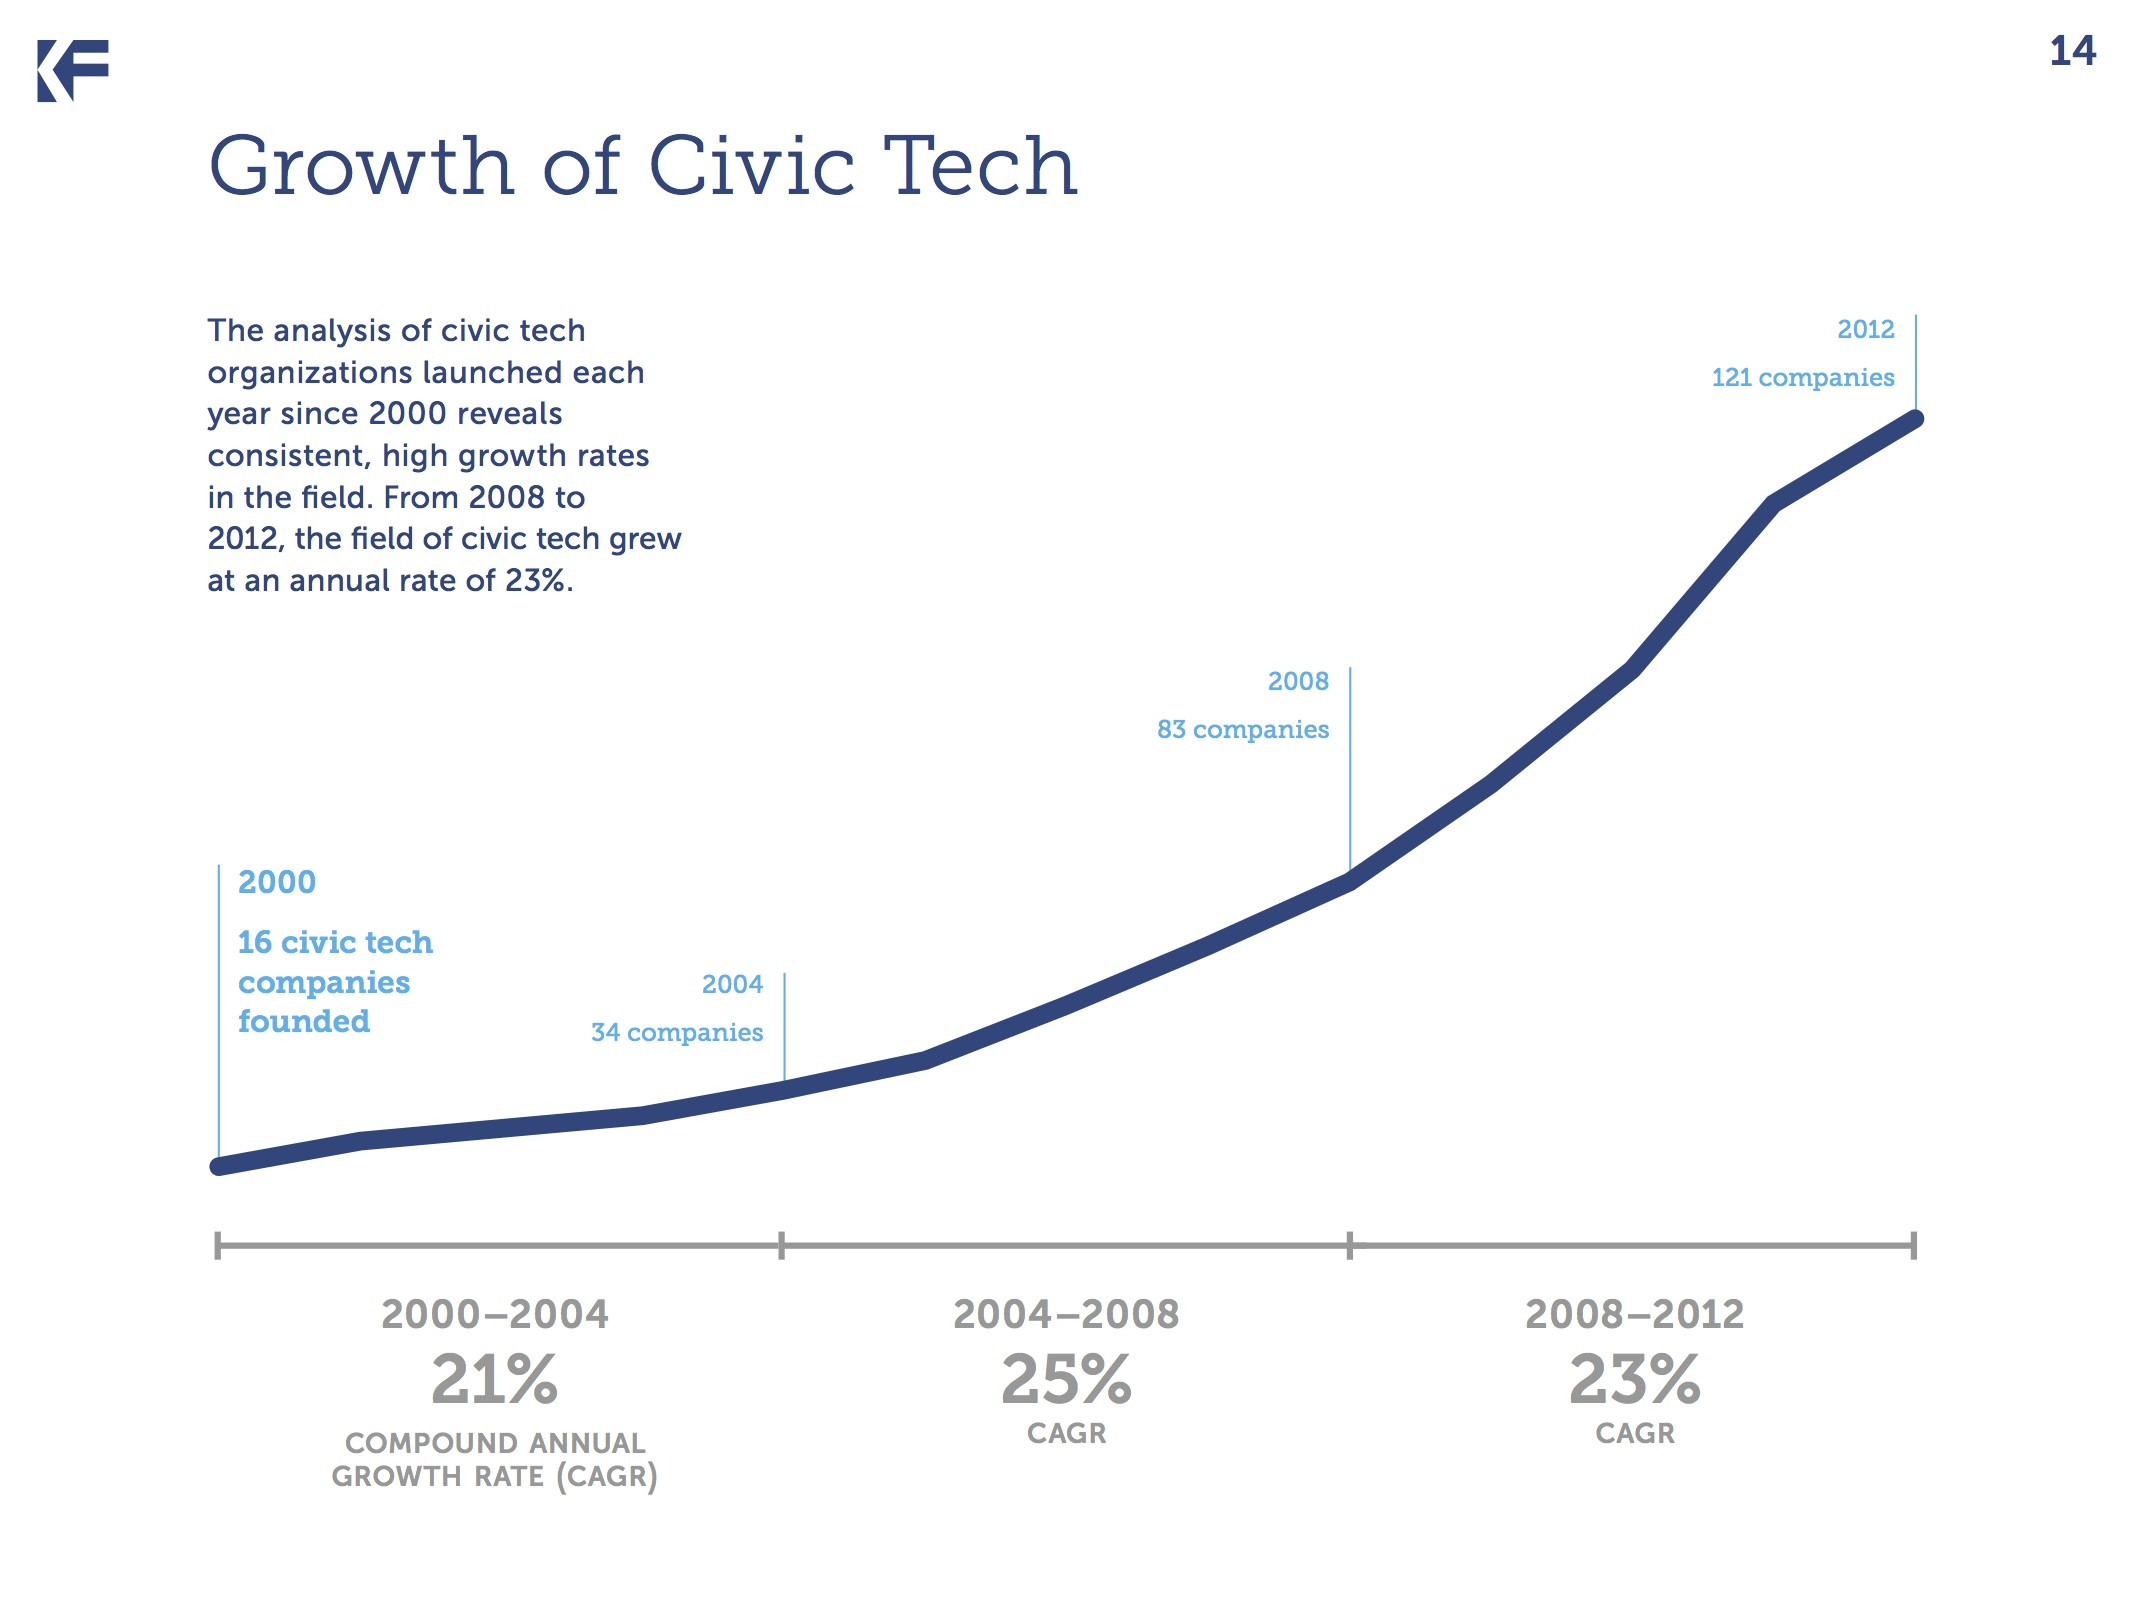 Knight civic tech growth